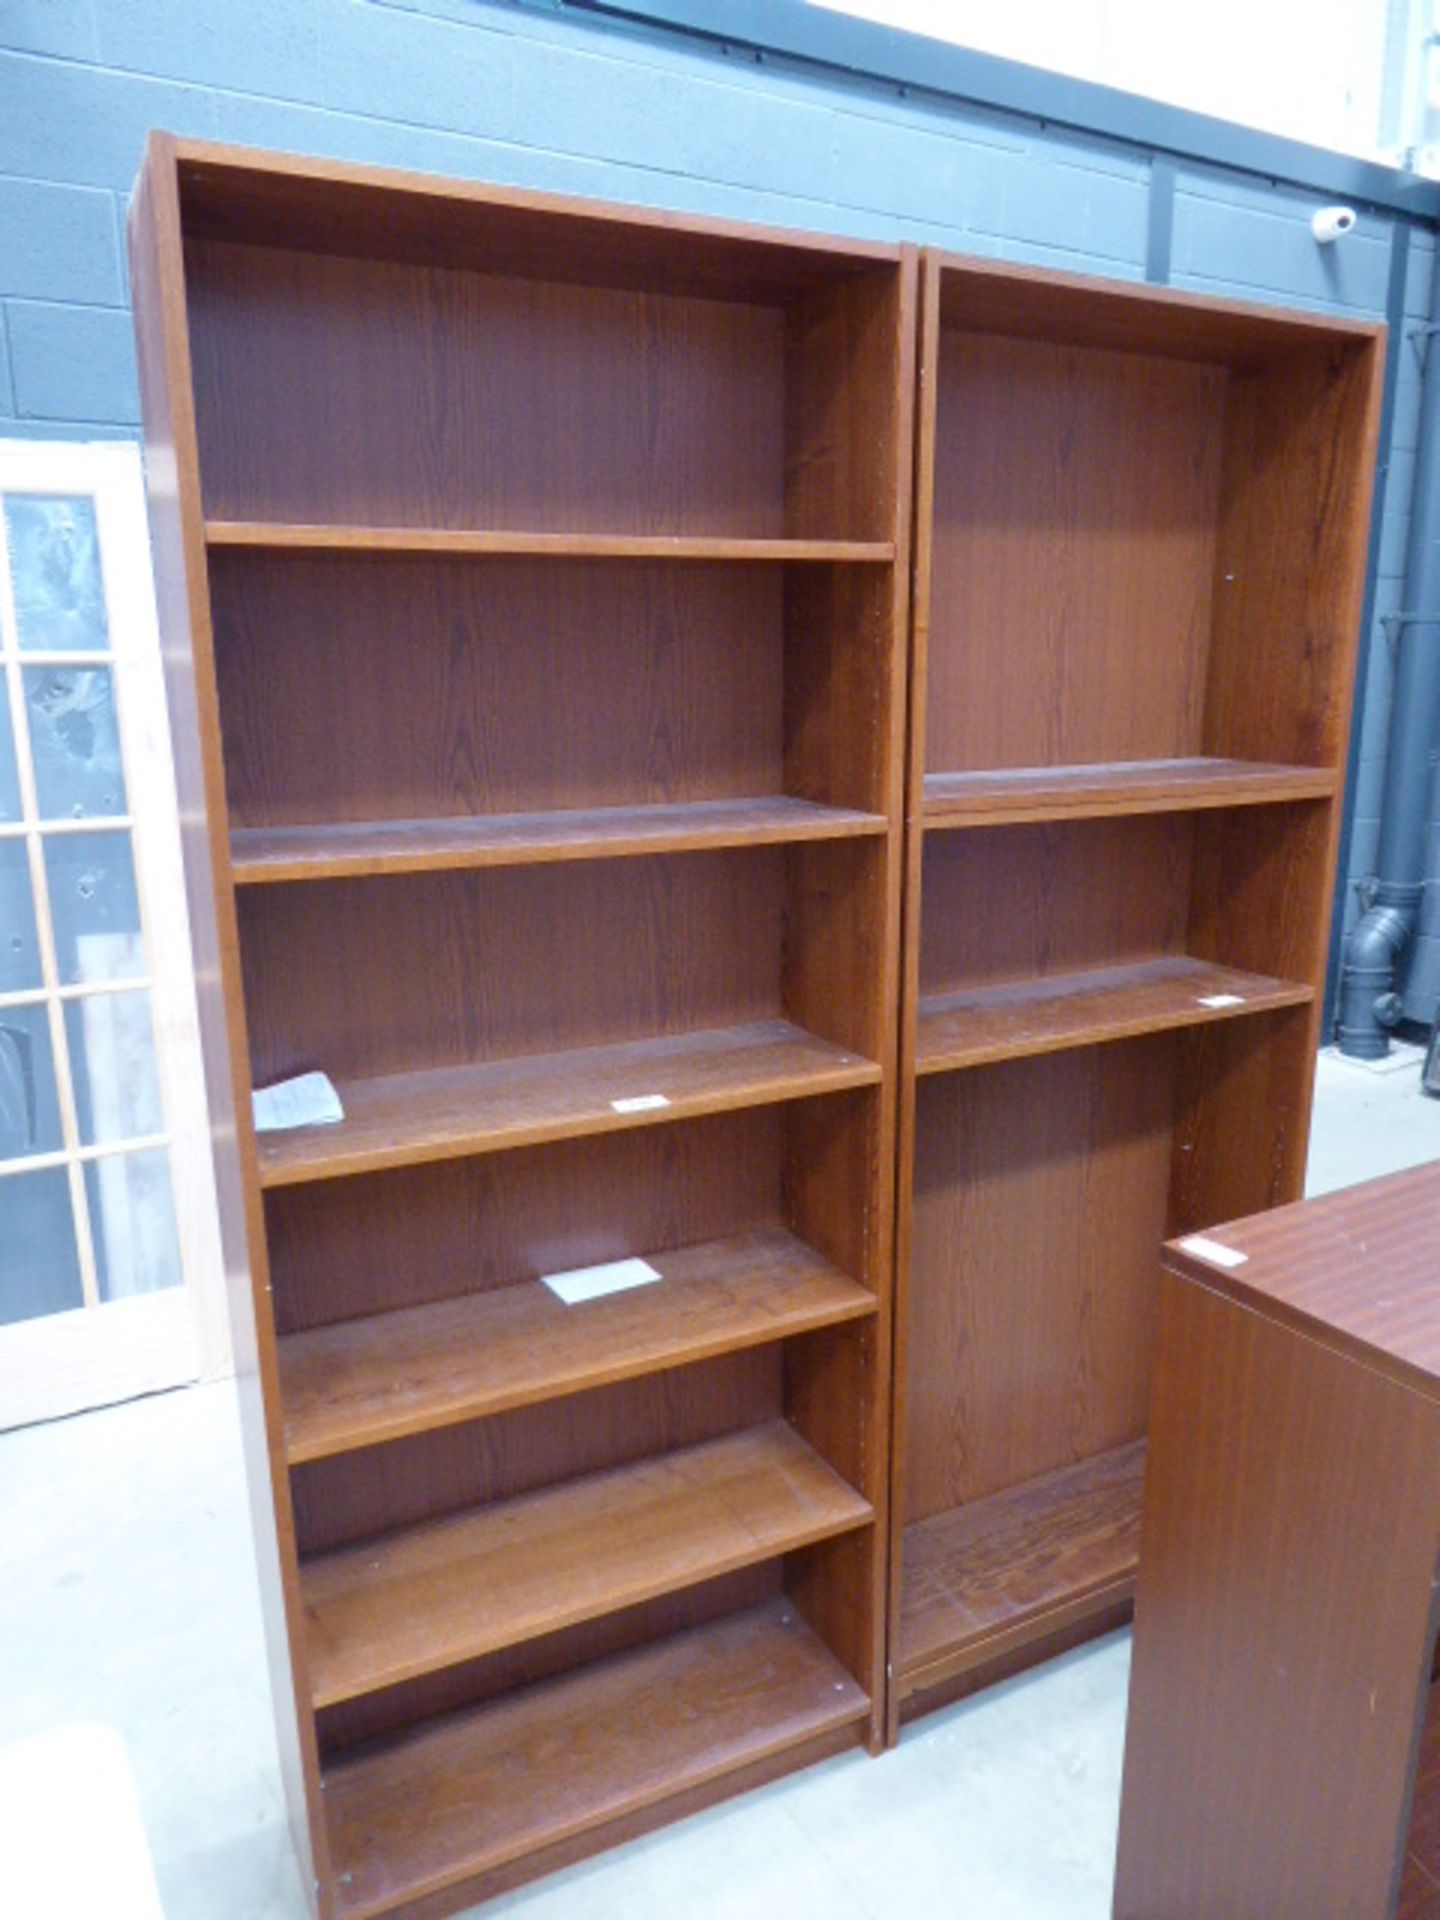 4153 - 2 wooden bookcases and a small darkwood bookcase - Image 2 of 3